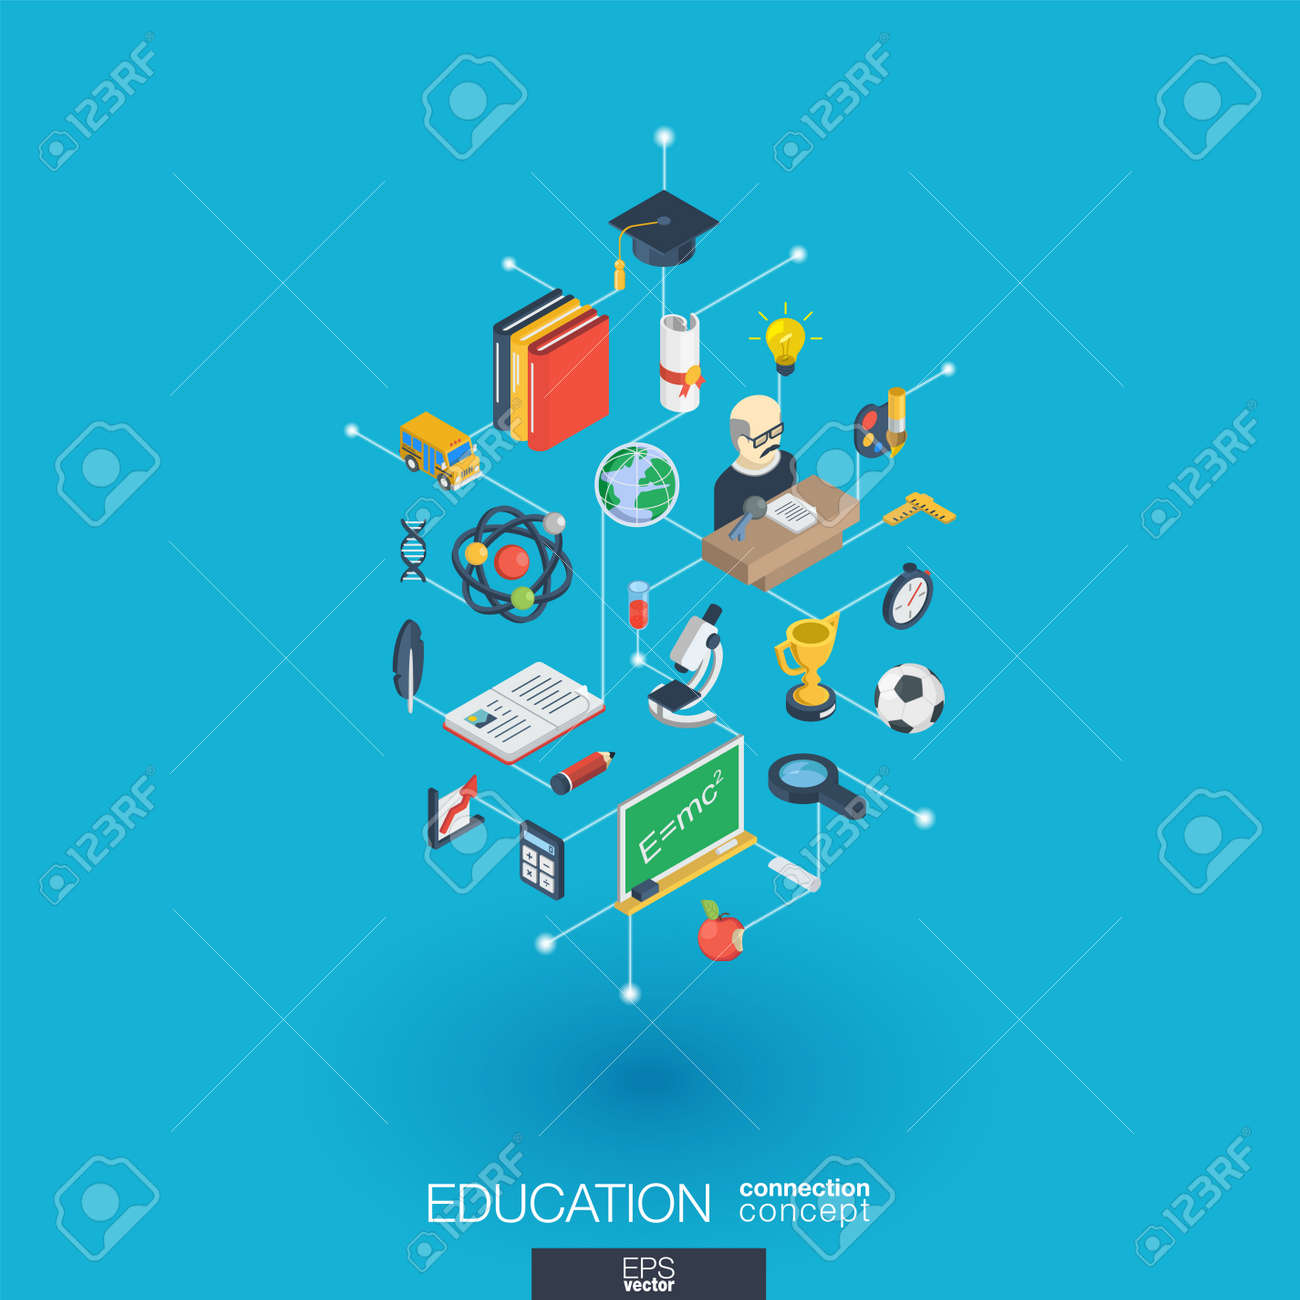 Education integrated 3d web icons. - 75651095